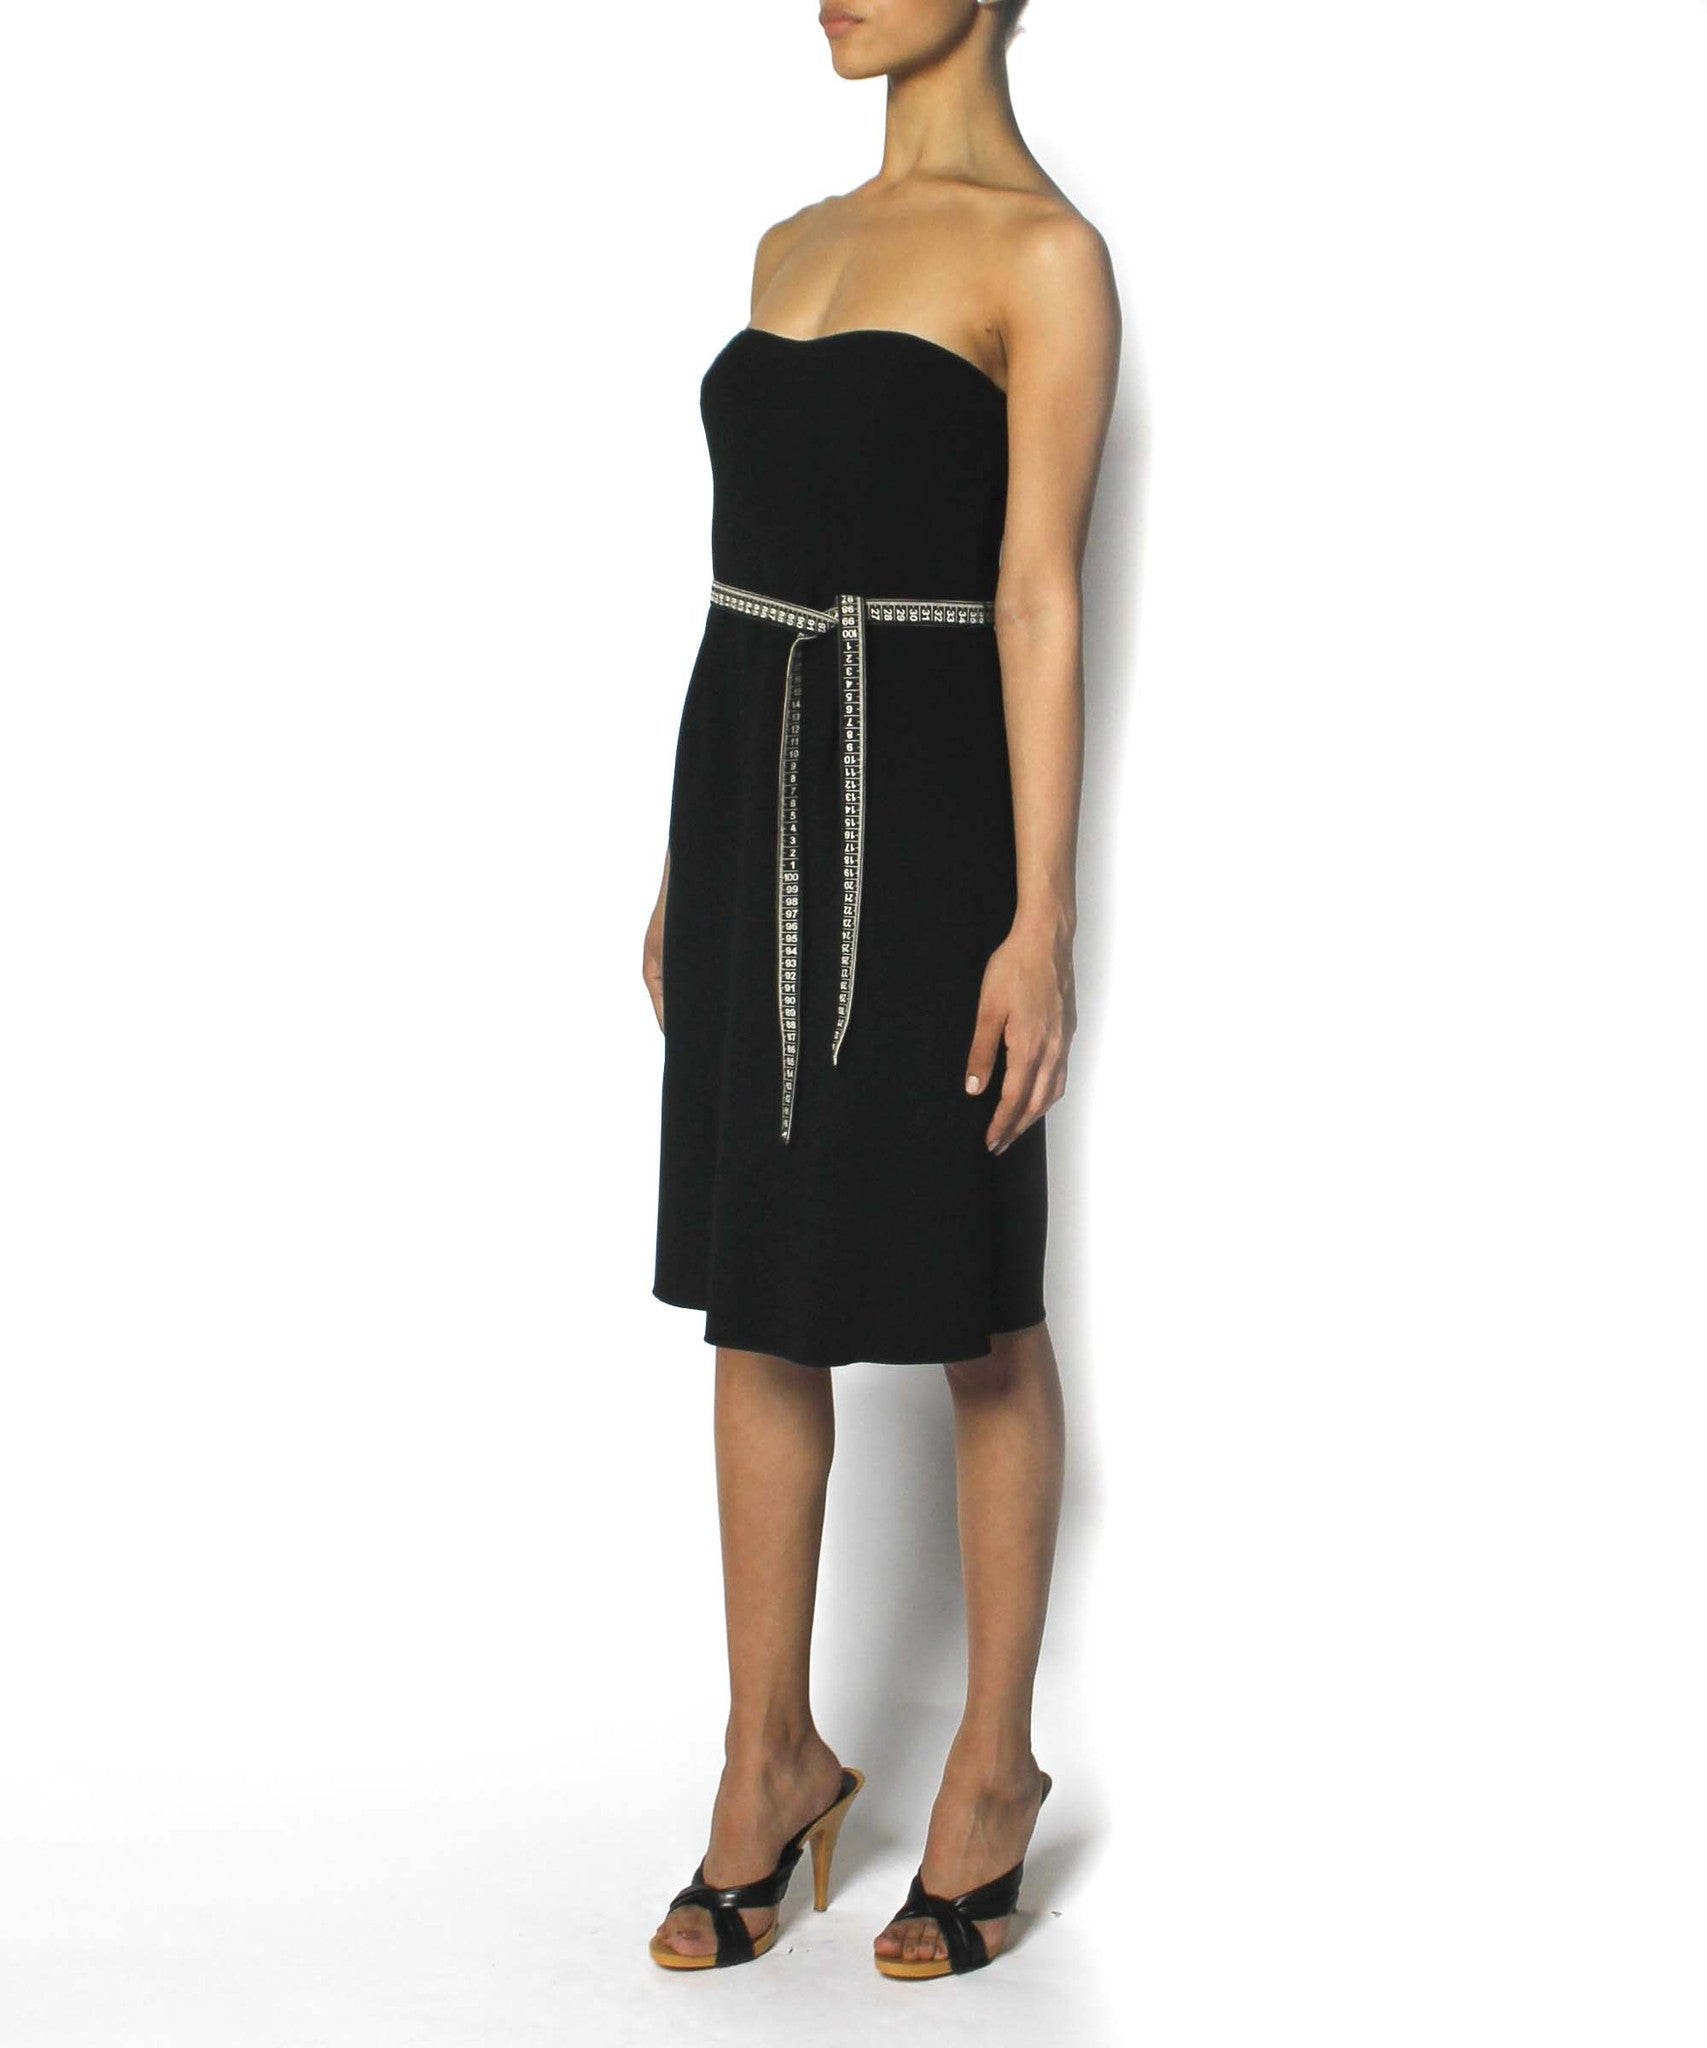 Moschino Strapless Black Dress with Tape Measure Belt - C.Madeleine's